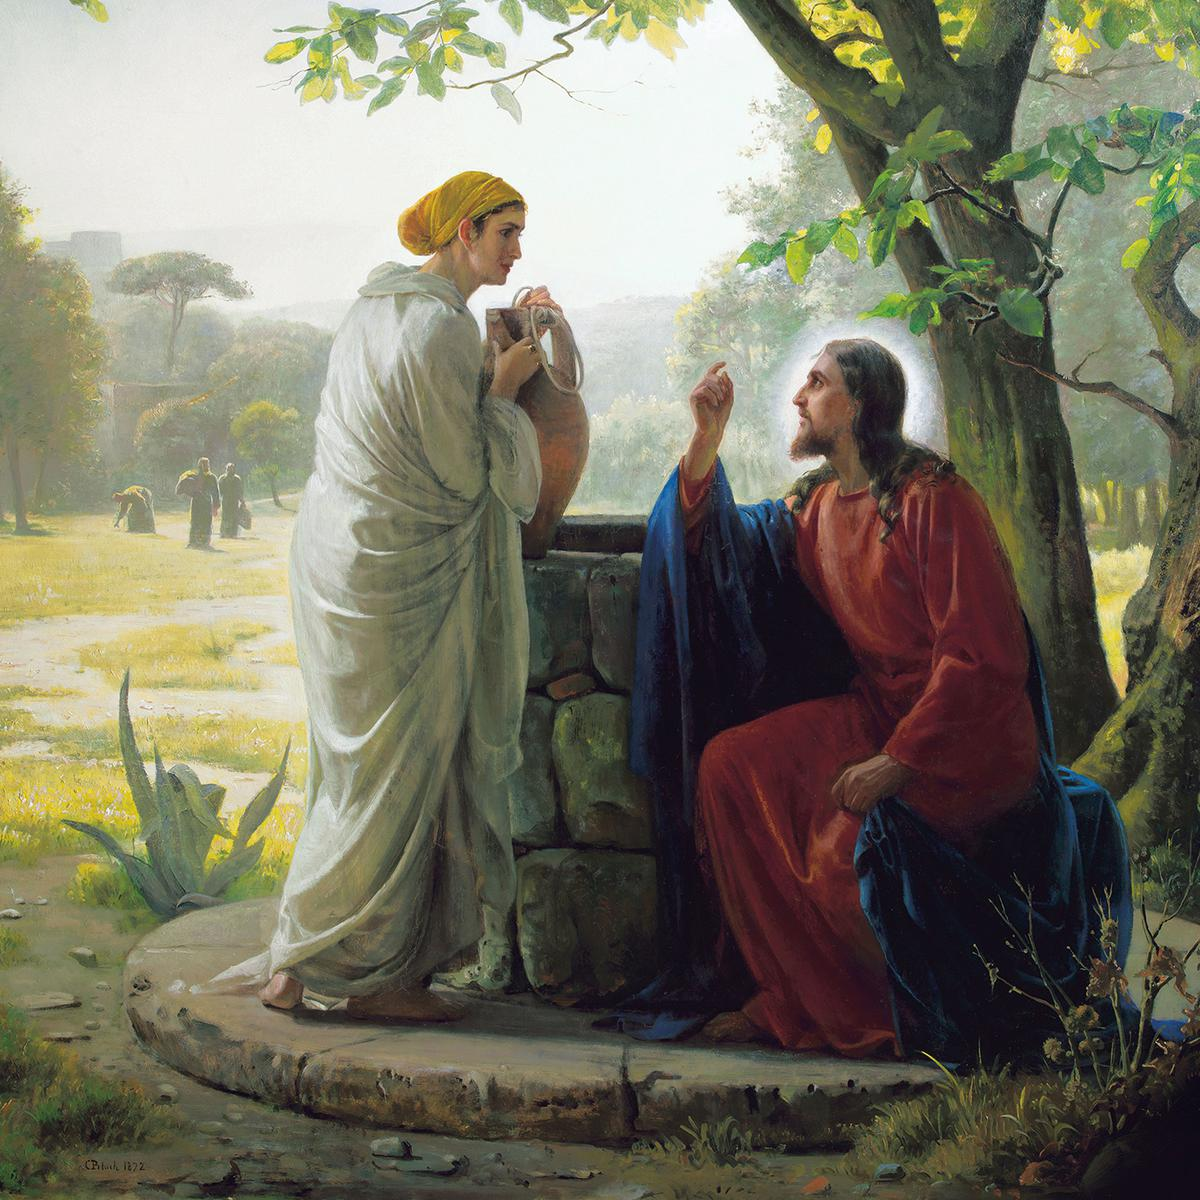 Jesus and woman at the well of Bethesda